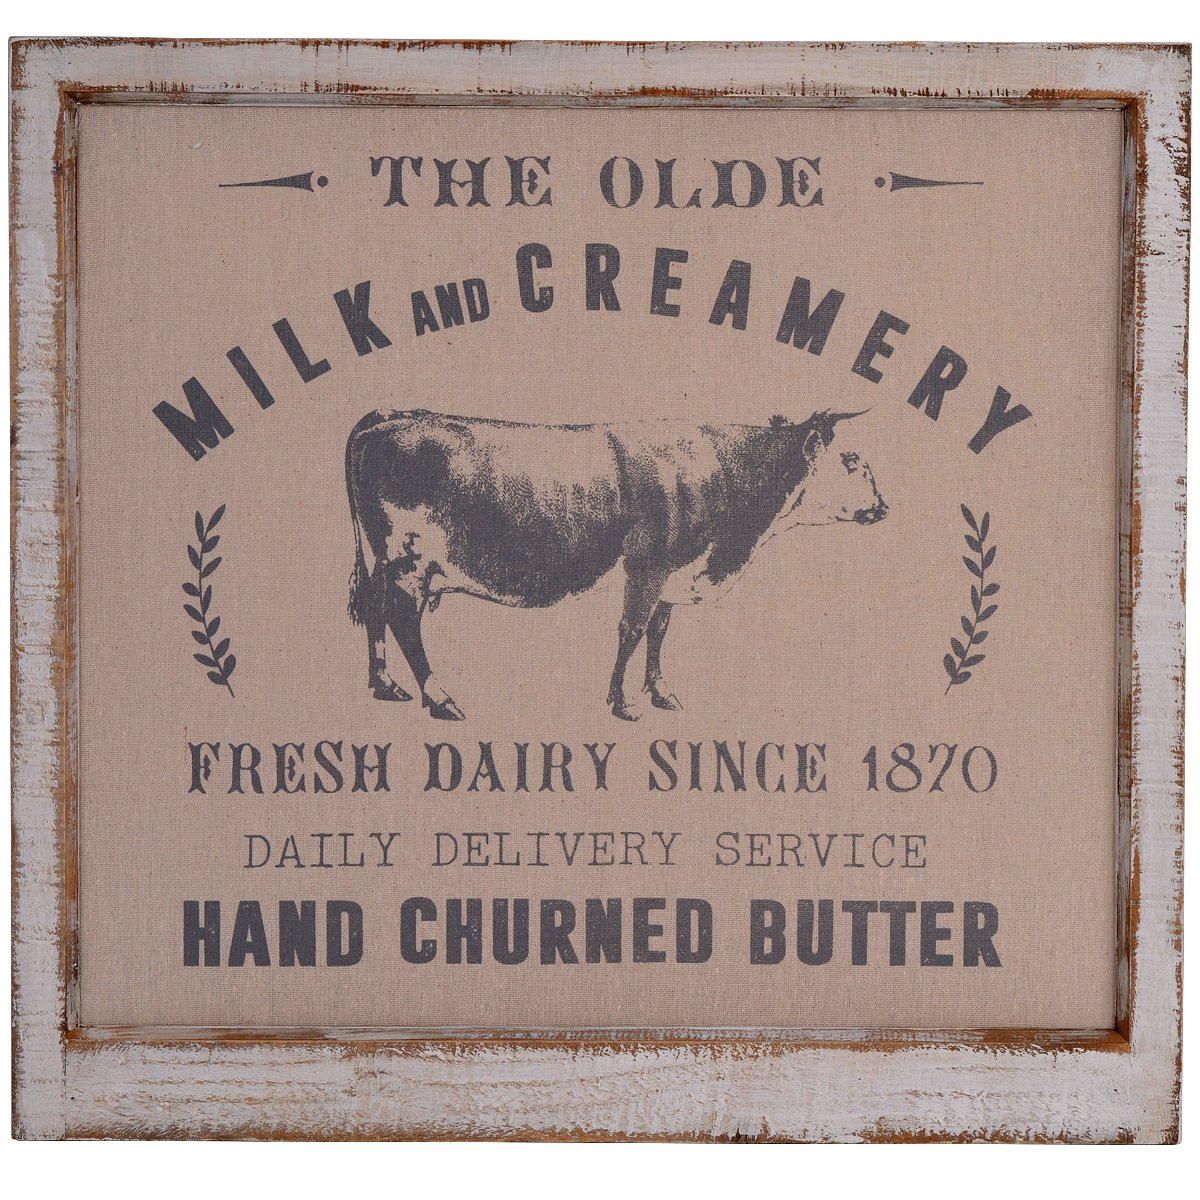 "NIKKY HOME 24"" x 23"" Vintage Farmhouse Wood Framed Wall Art Milk and Creamery Daily Delivery Service Linen Print"